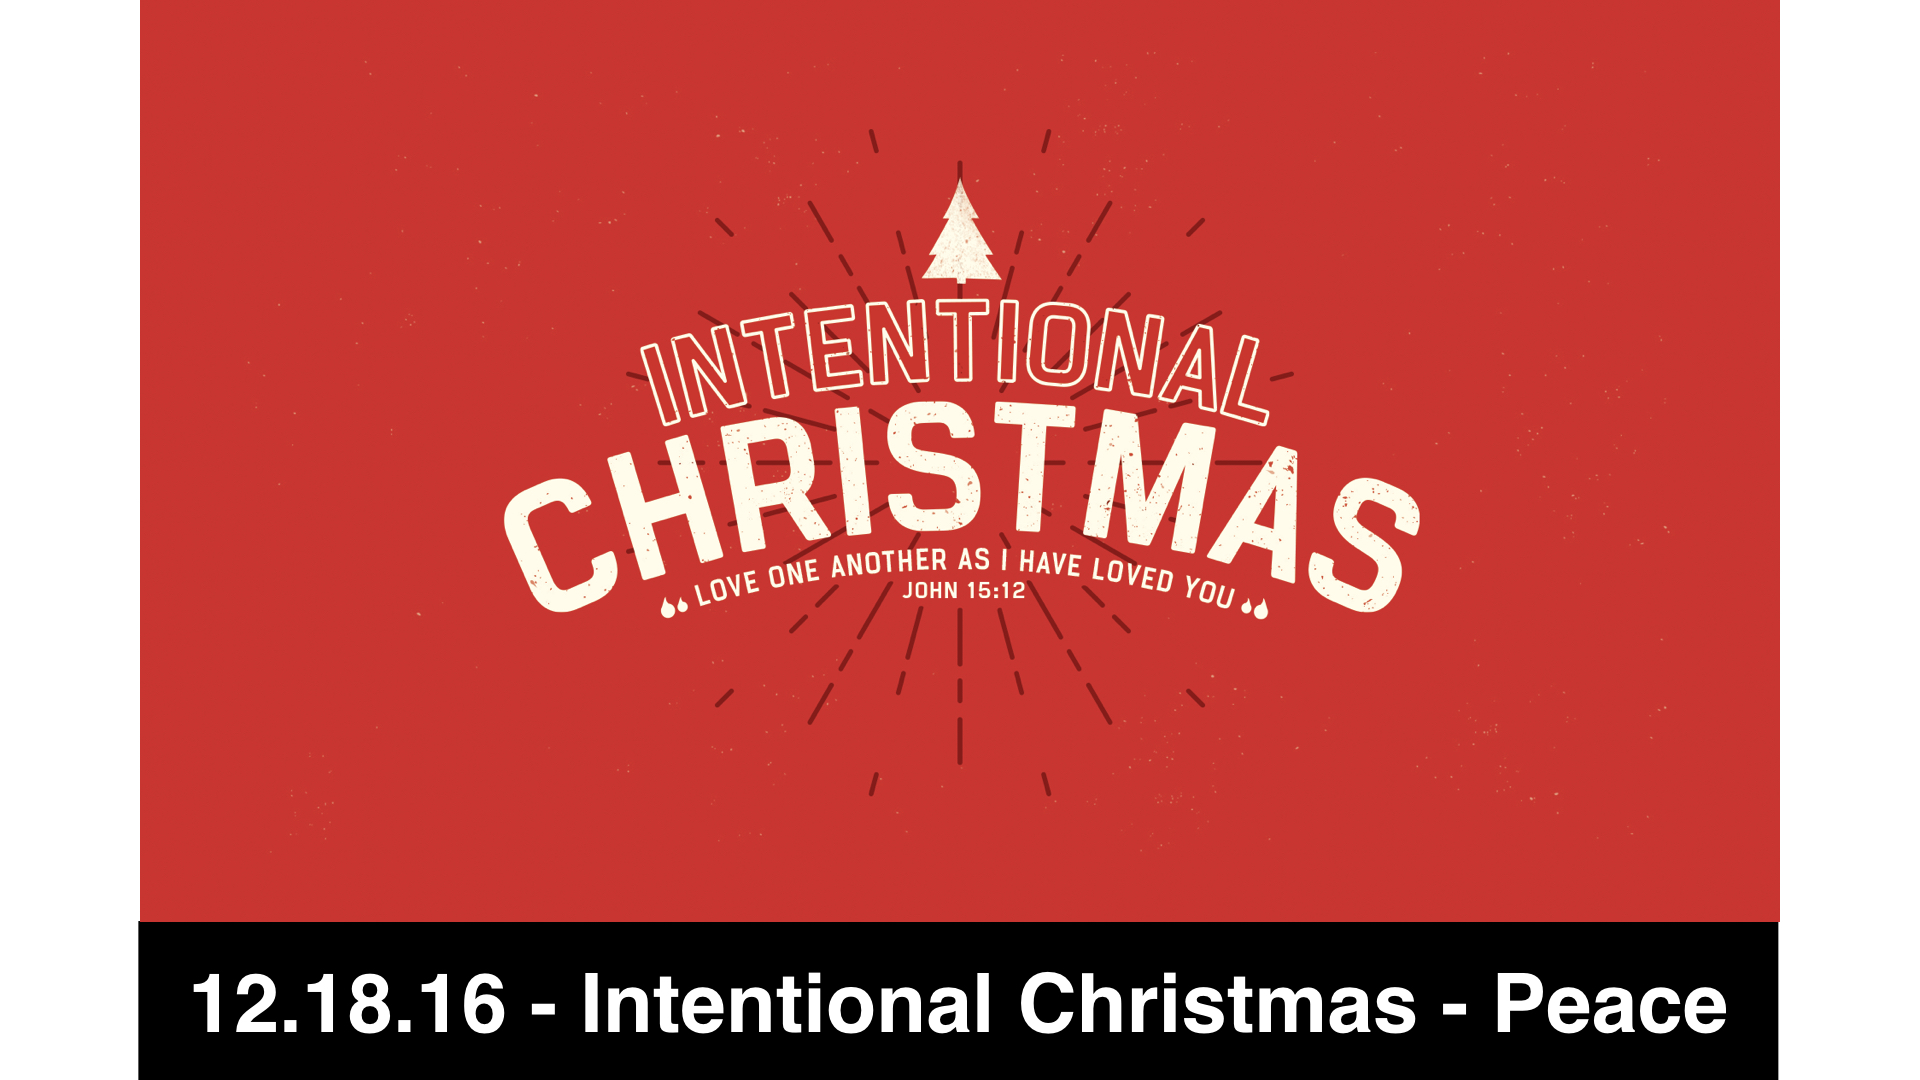 12.8.16 - Intentional Christmas - Peace